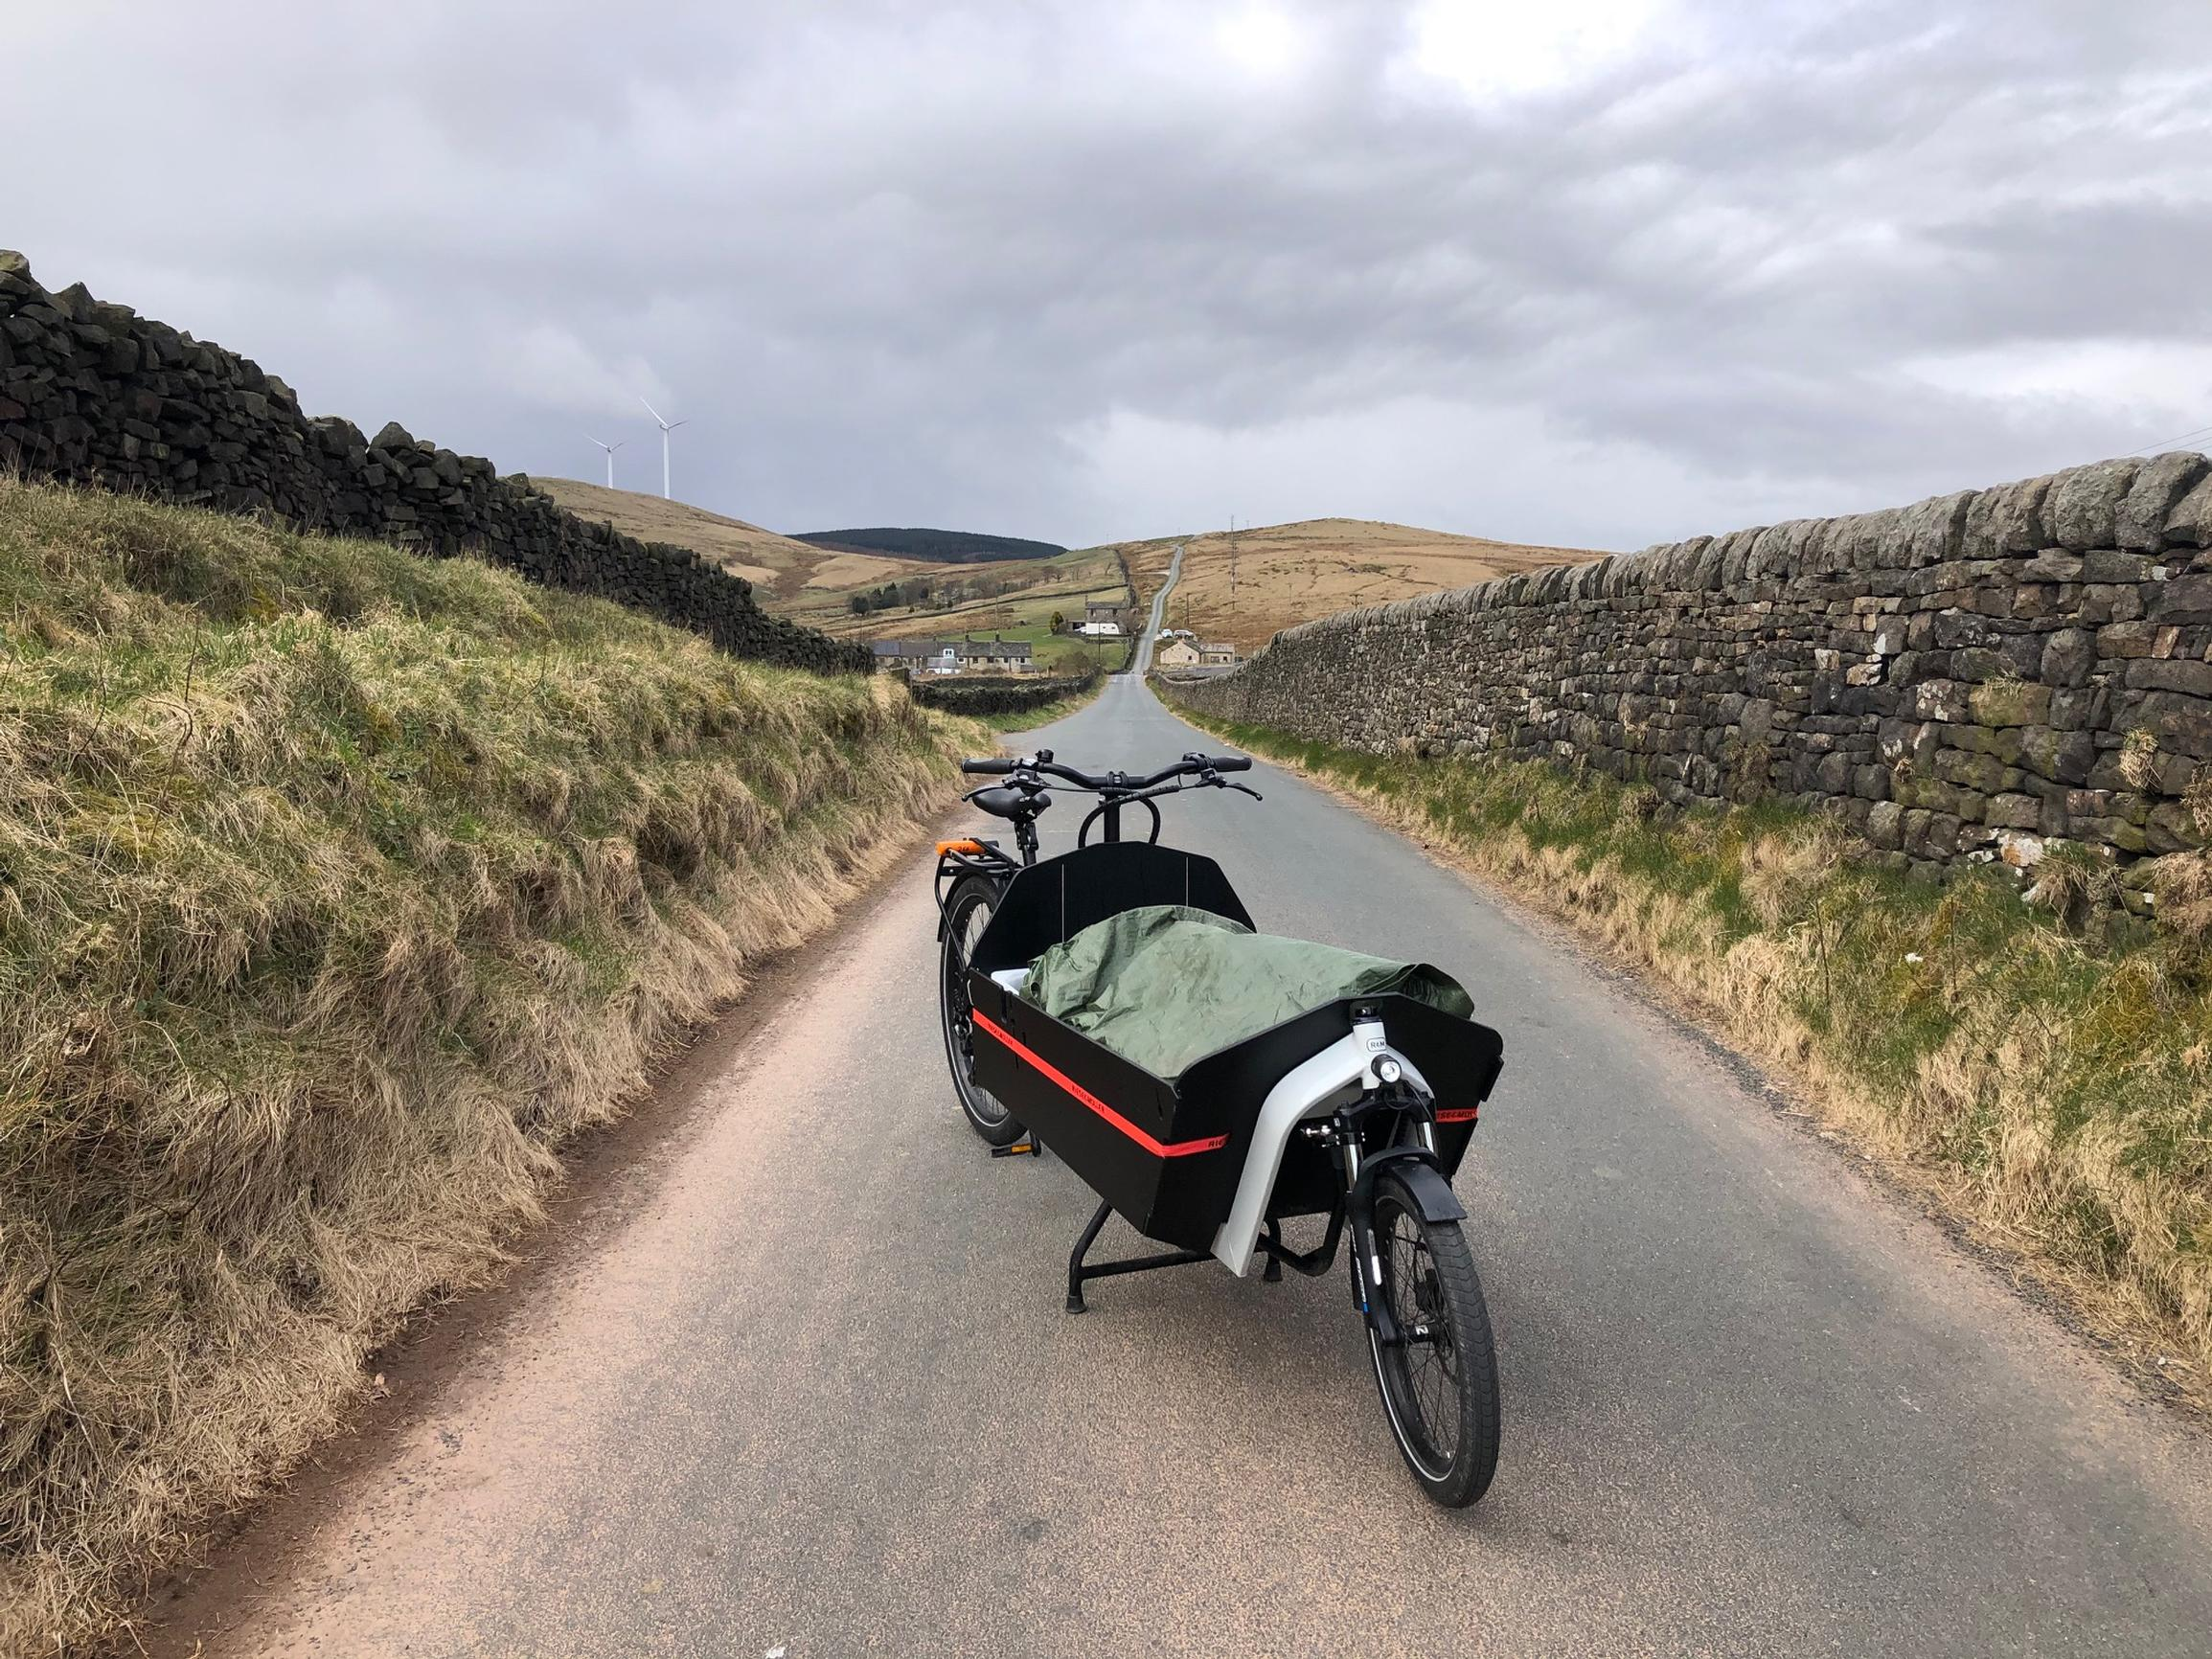 Cargodale: Calderdale ecargo bike delivery service takes on COVID-19 and is #cyclingtheextramile